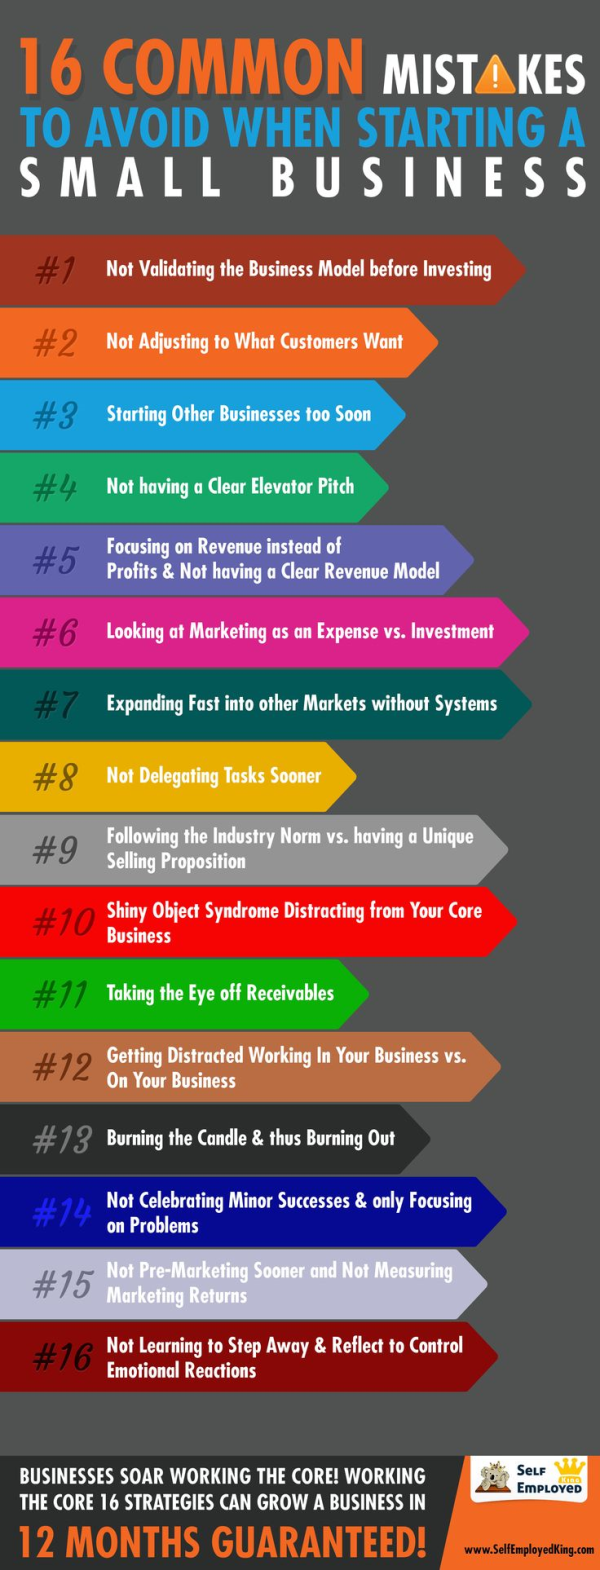 [Infographic] Common Mistakes When Starting a Small Business